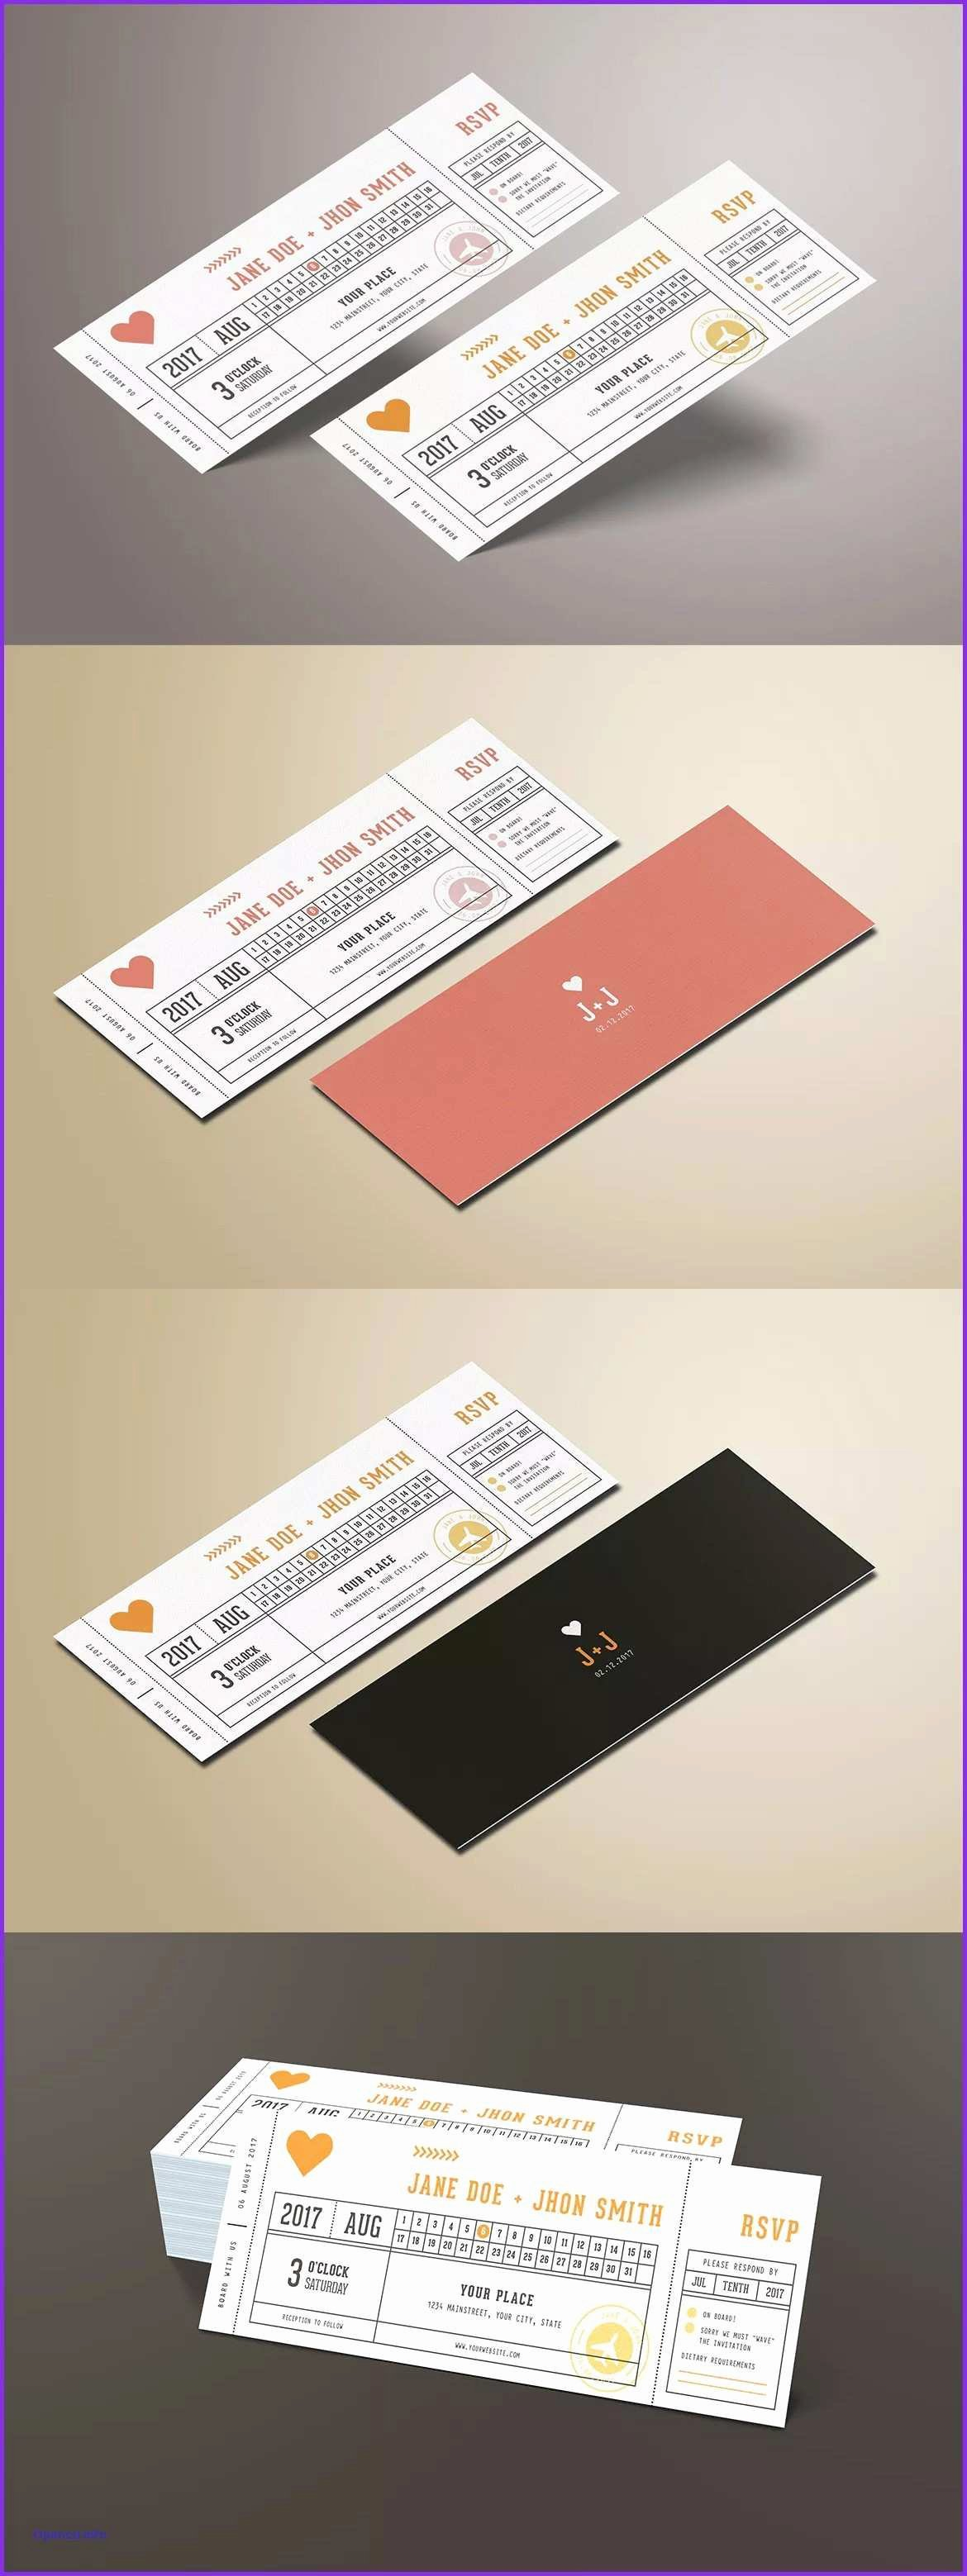 Awesome Quill Inkjet Label Templates